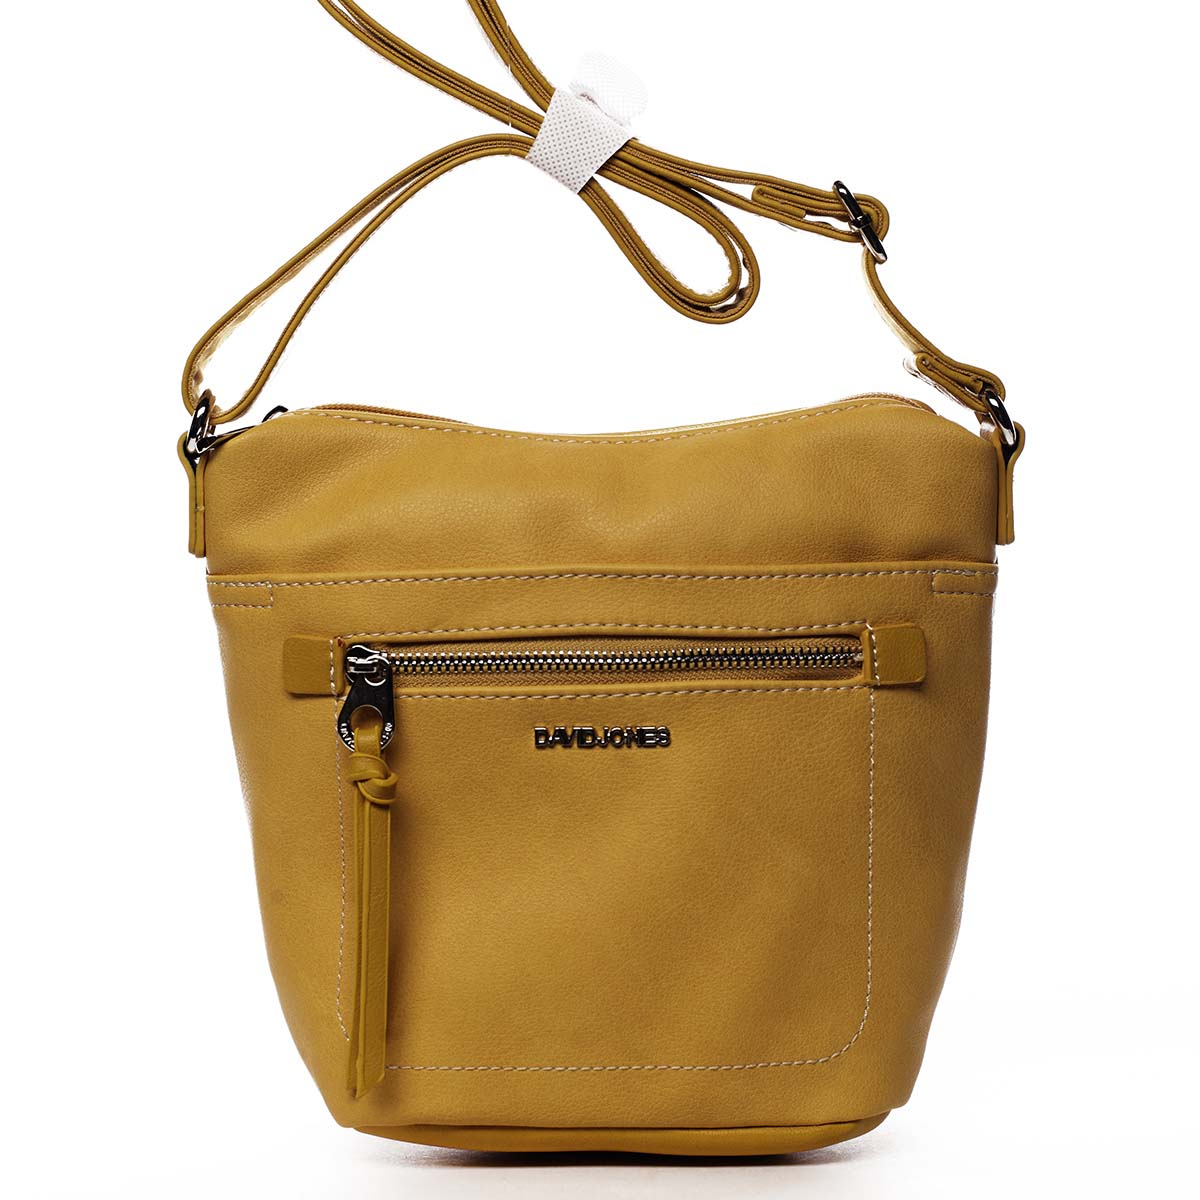 Dámska crossbody kabelka žltá - David Jones Iayne